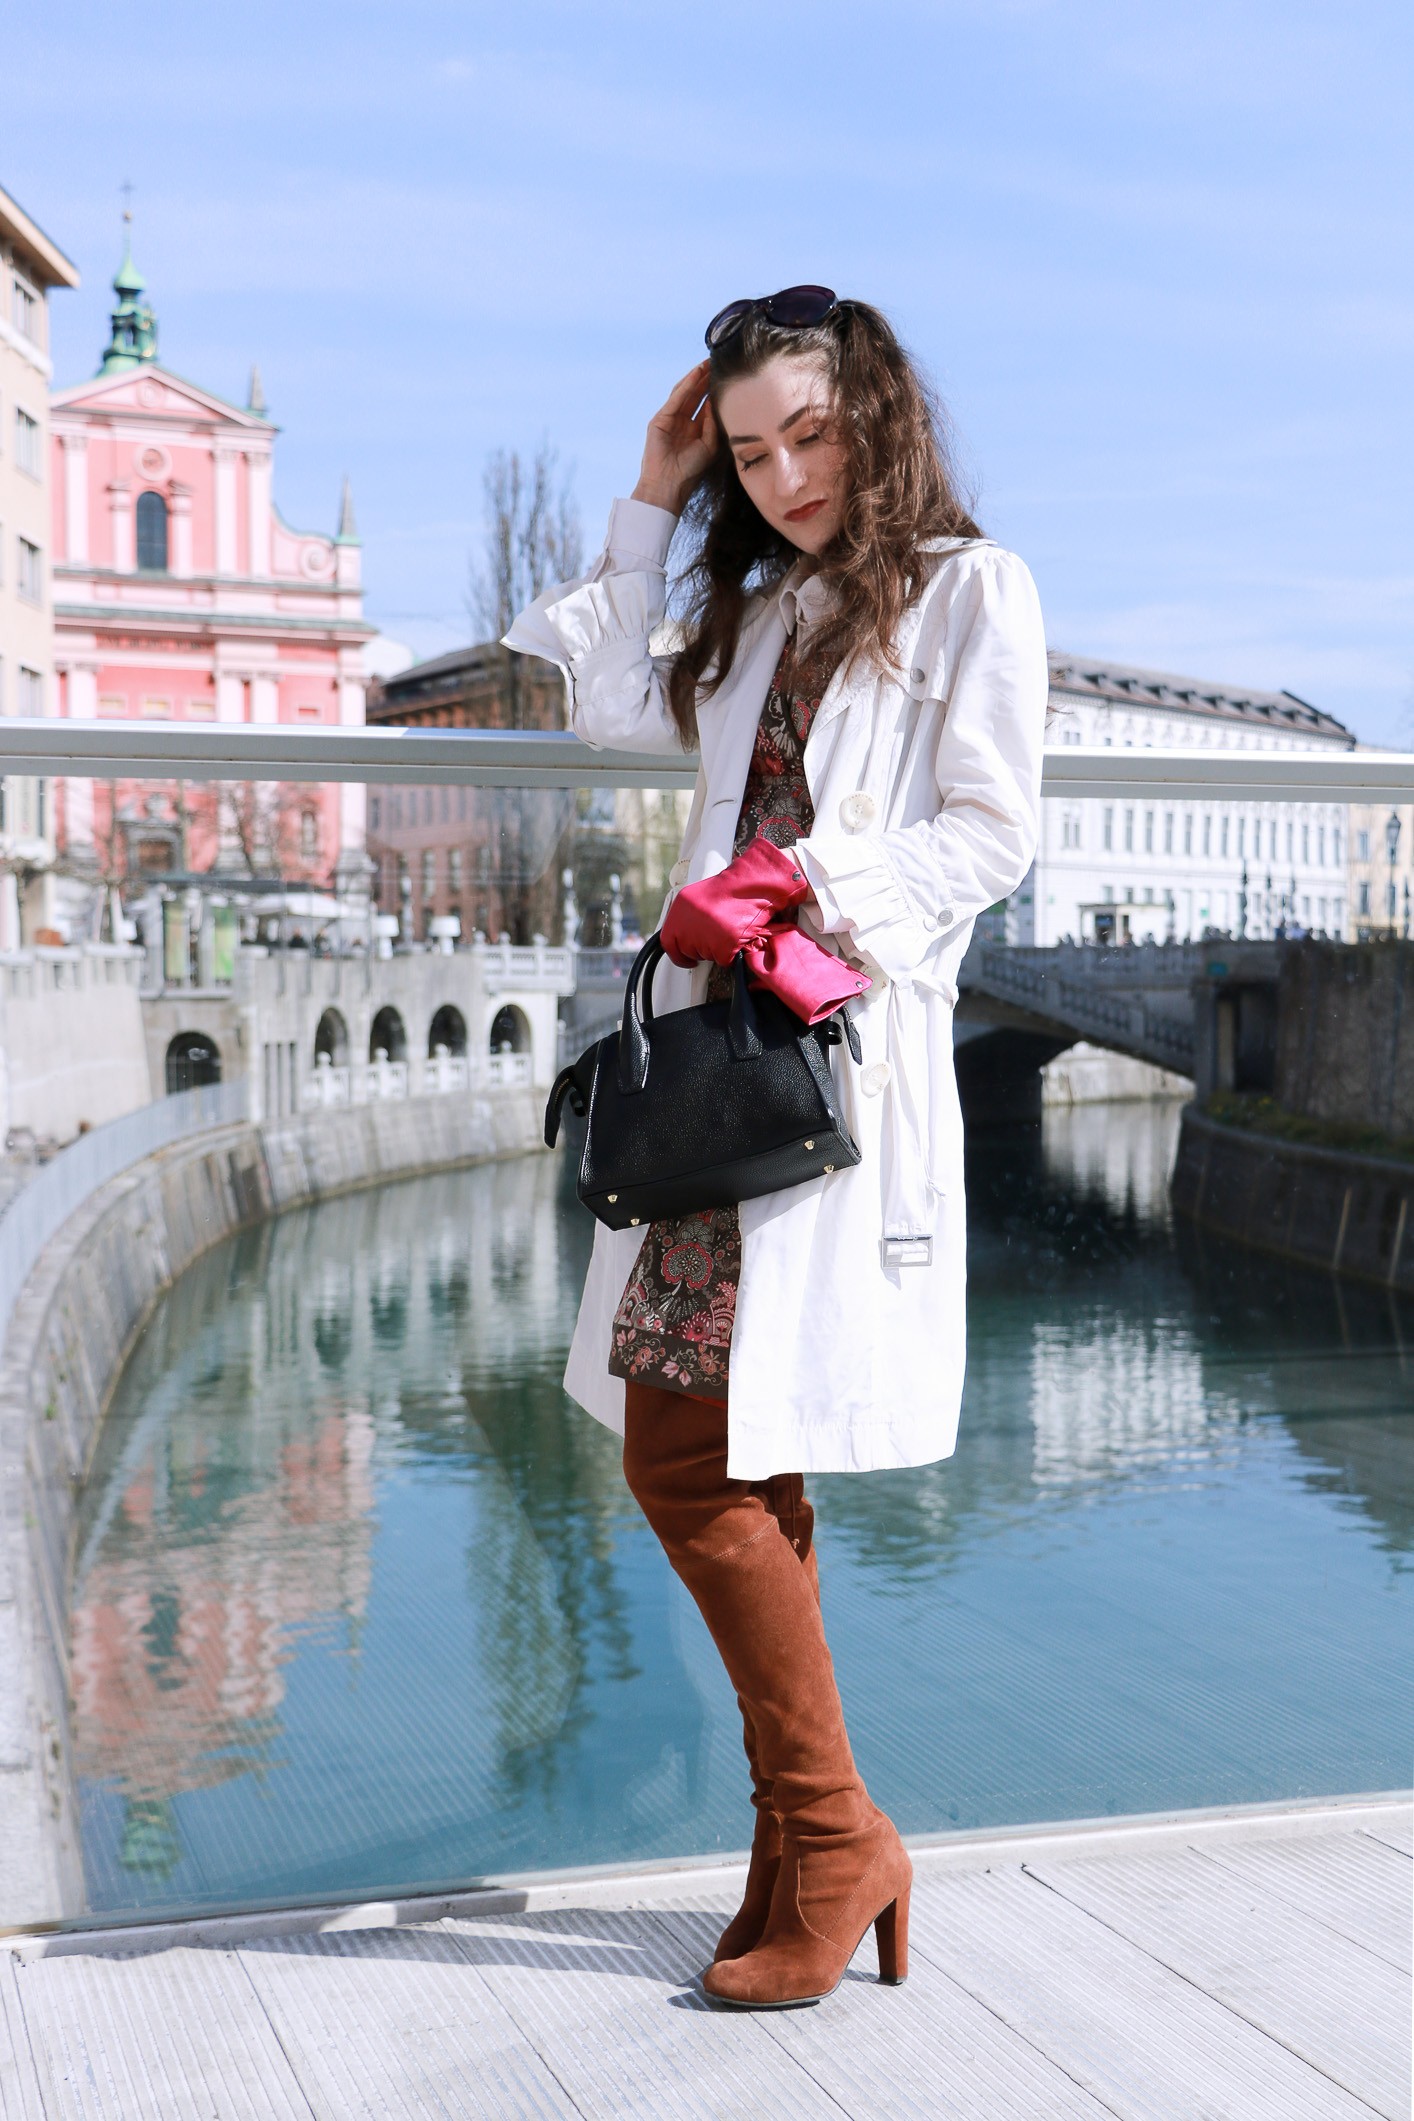 Fashion blogger Veronika Lipar of Brunette From Wall Street sharing what to wear to the festival this spring